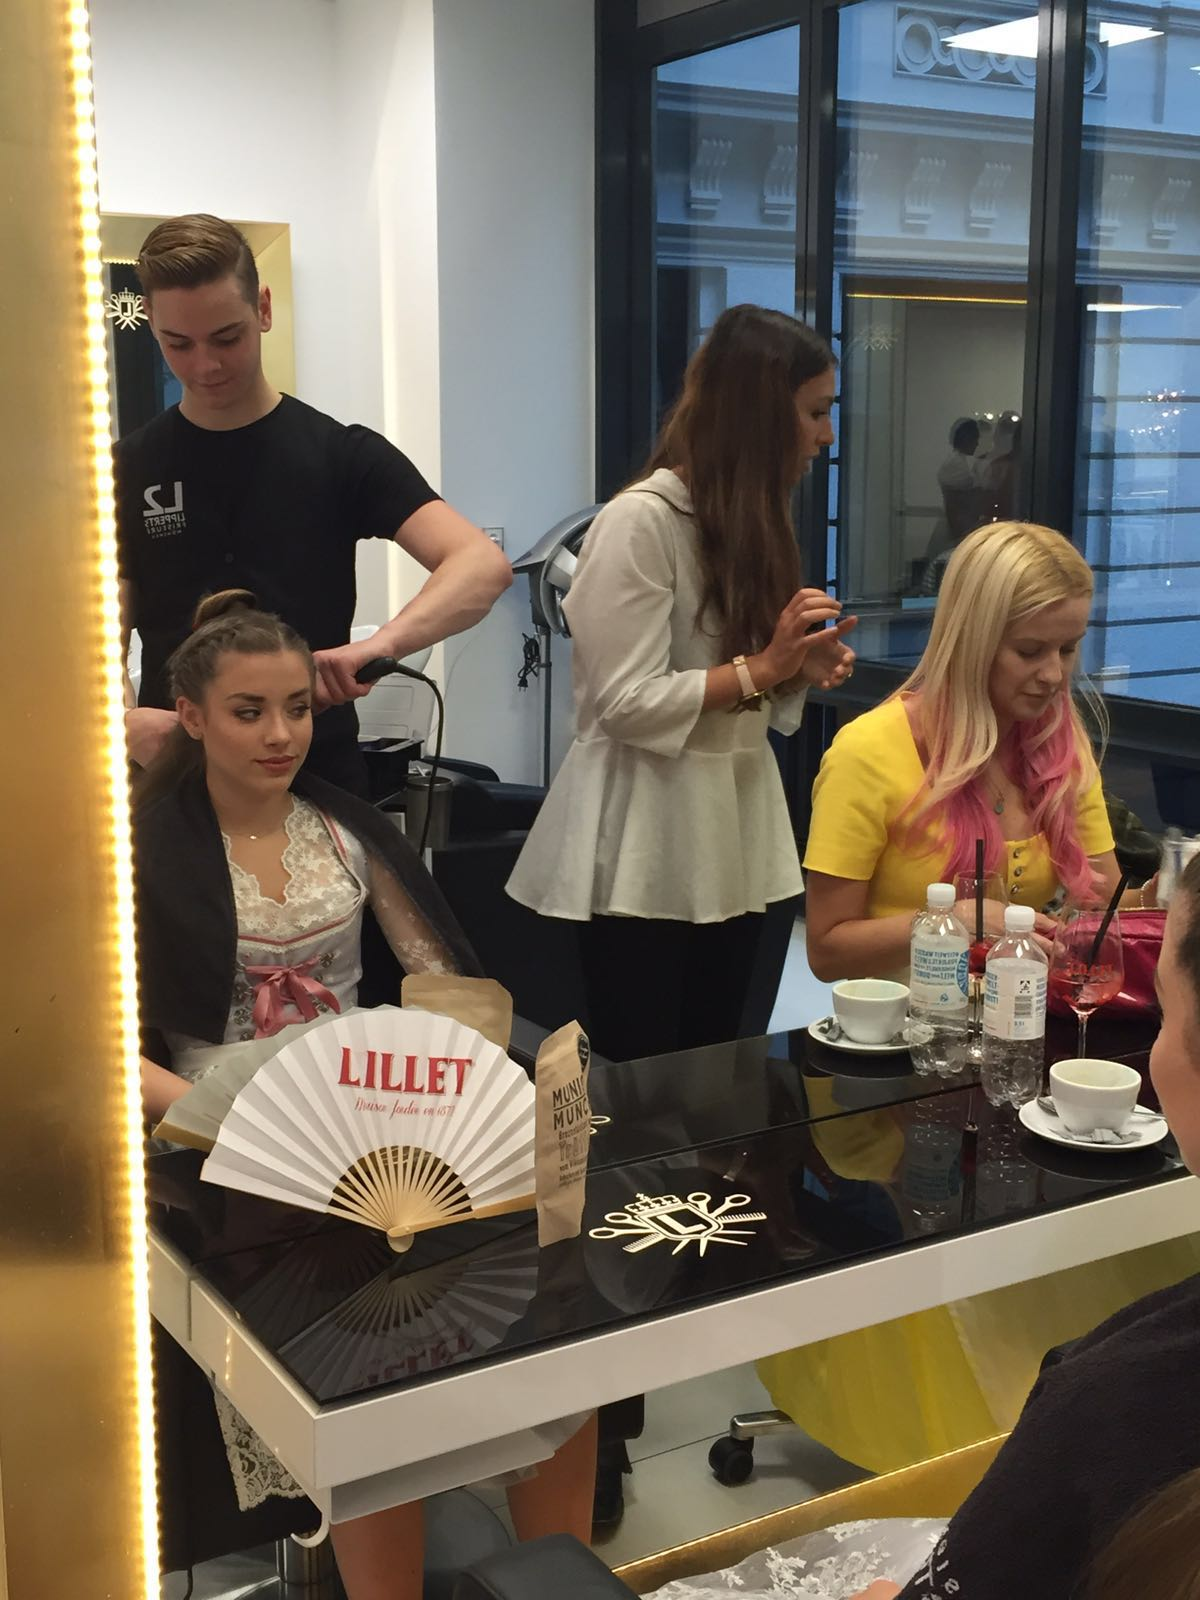 blogwalk-wiesn-limberry-friseur